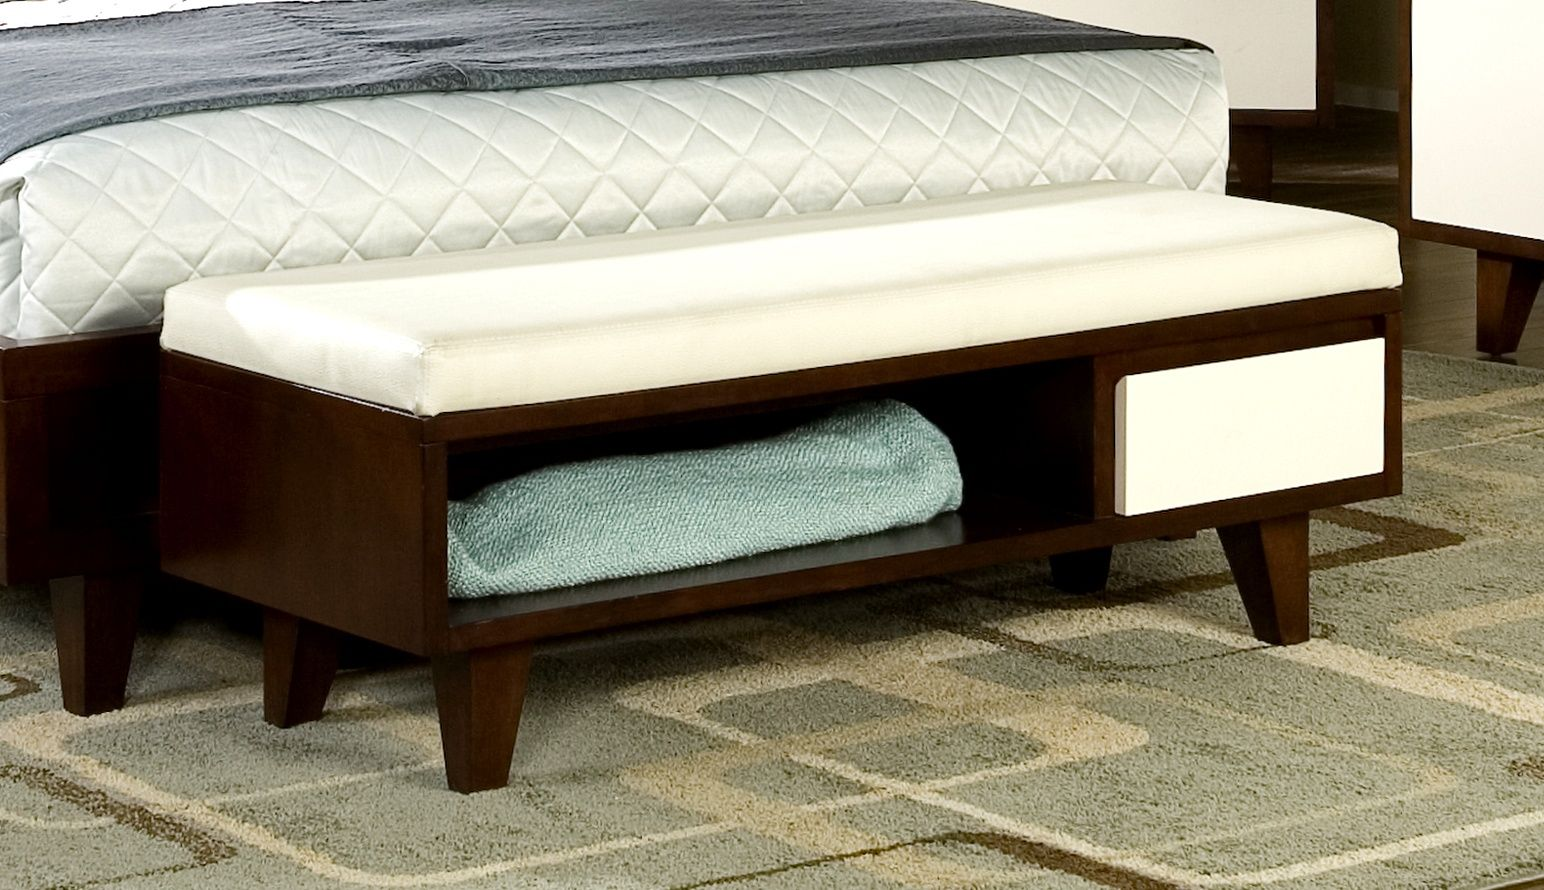 Sculpture of bedroom benches with storage ideas